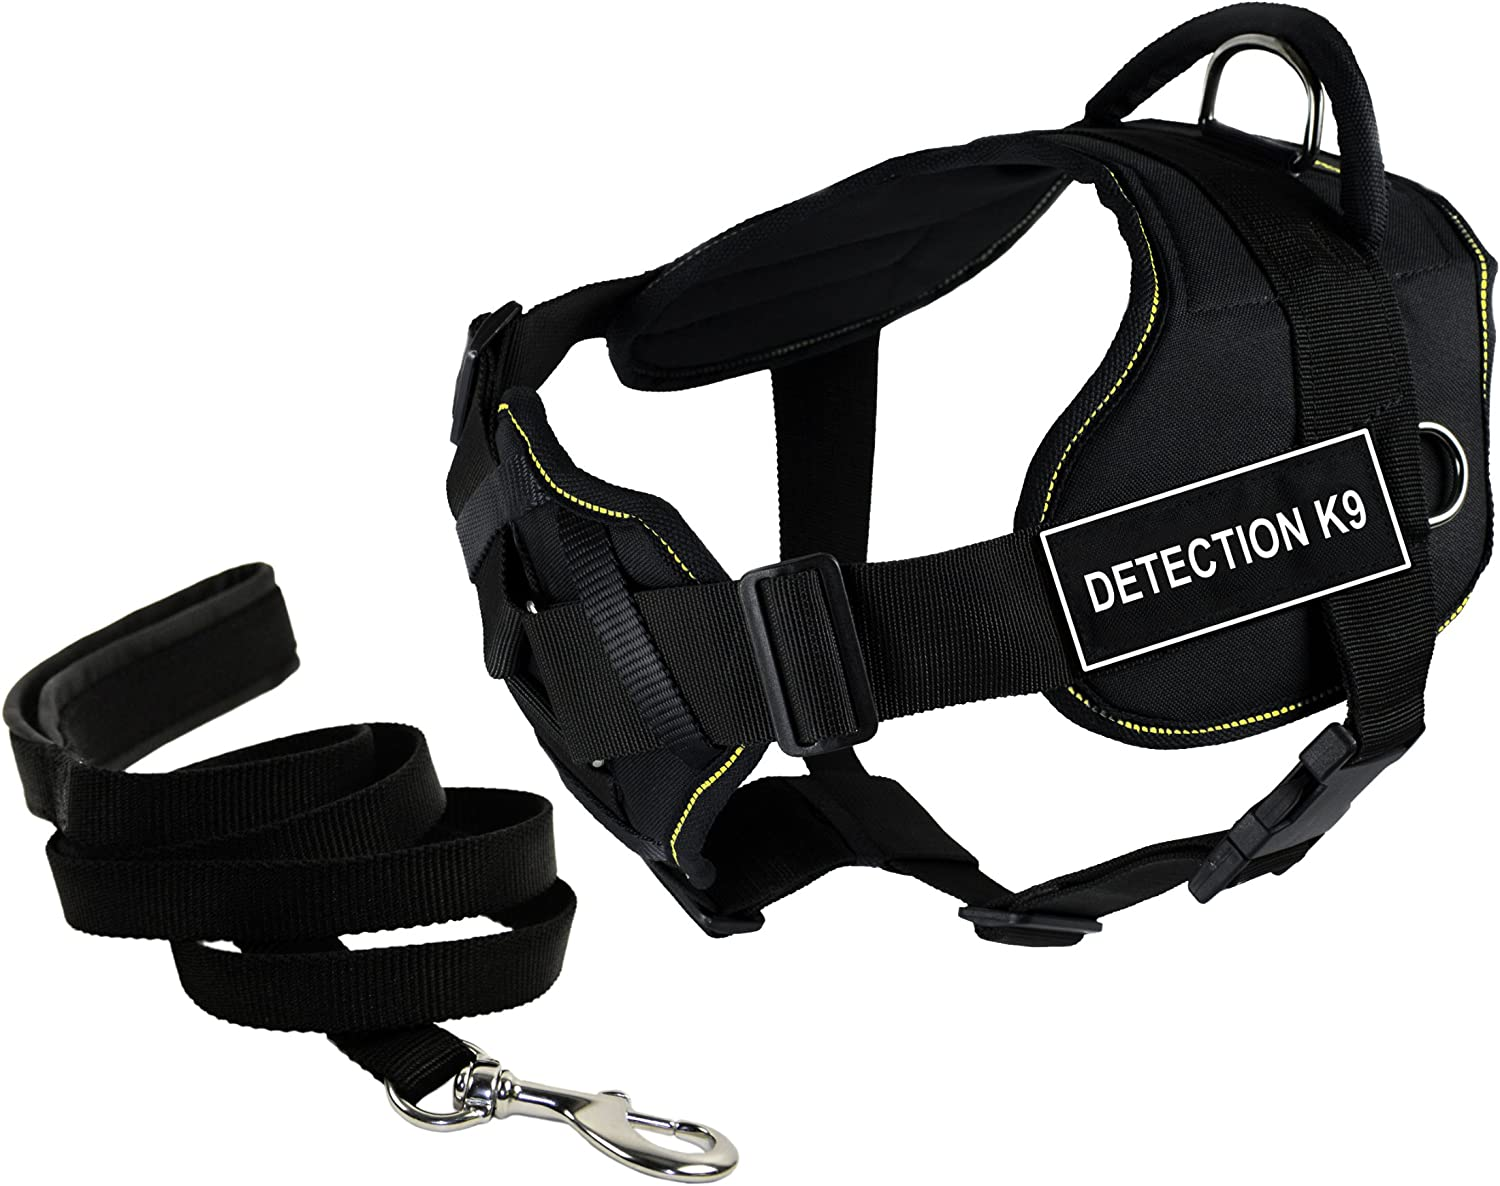 Dean & Tyler's DT Fun Chest Support DETECTION K9 Harness, Large, with 6 ft Padded Puppy Leash.